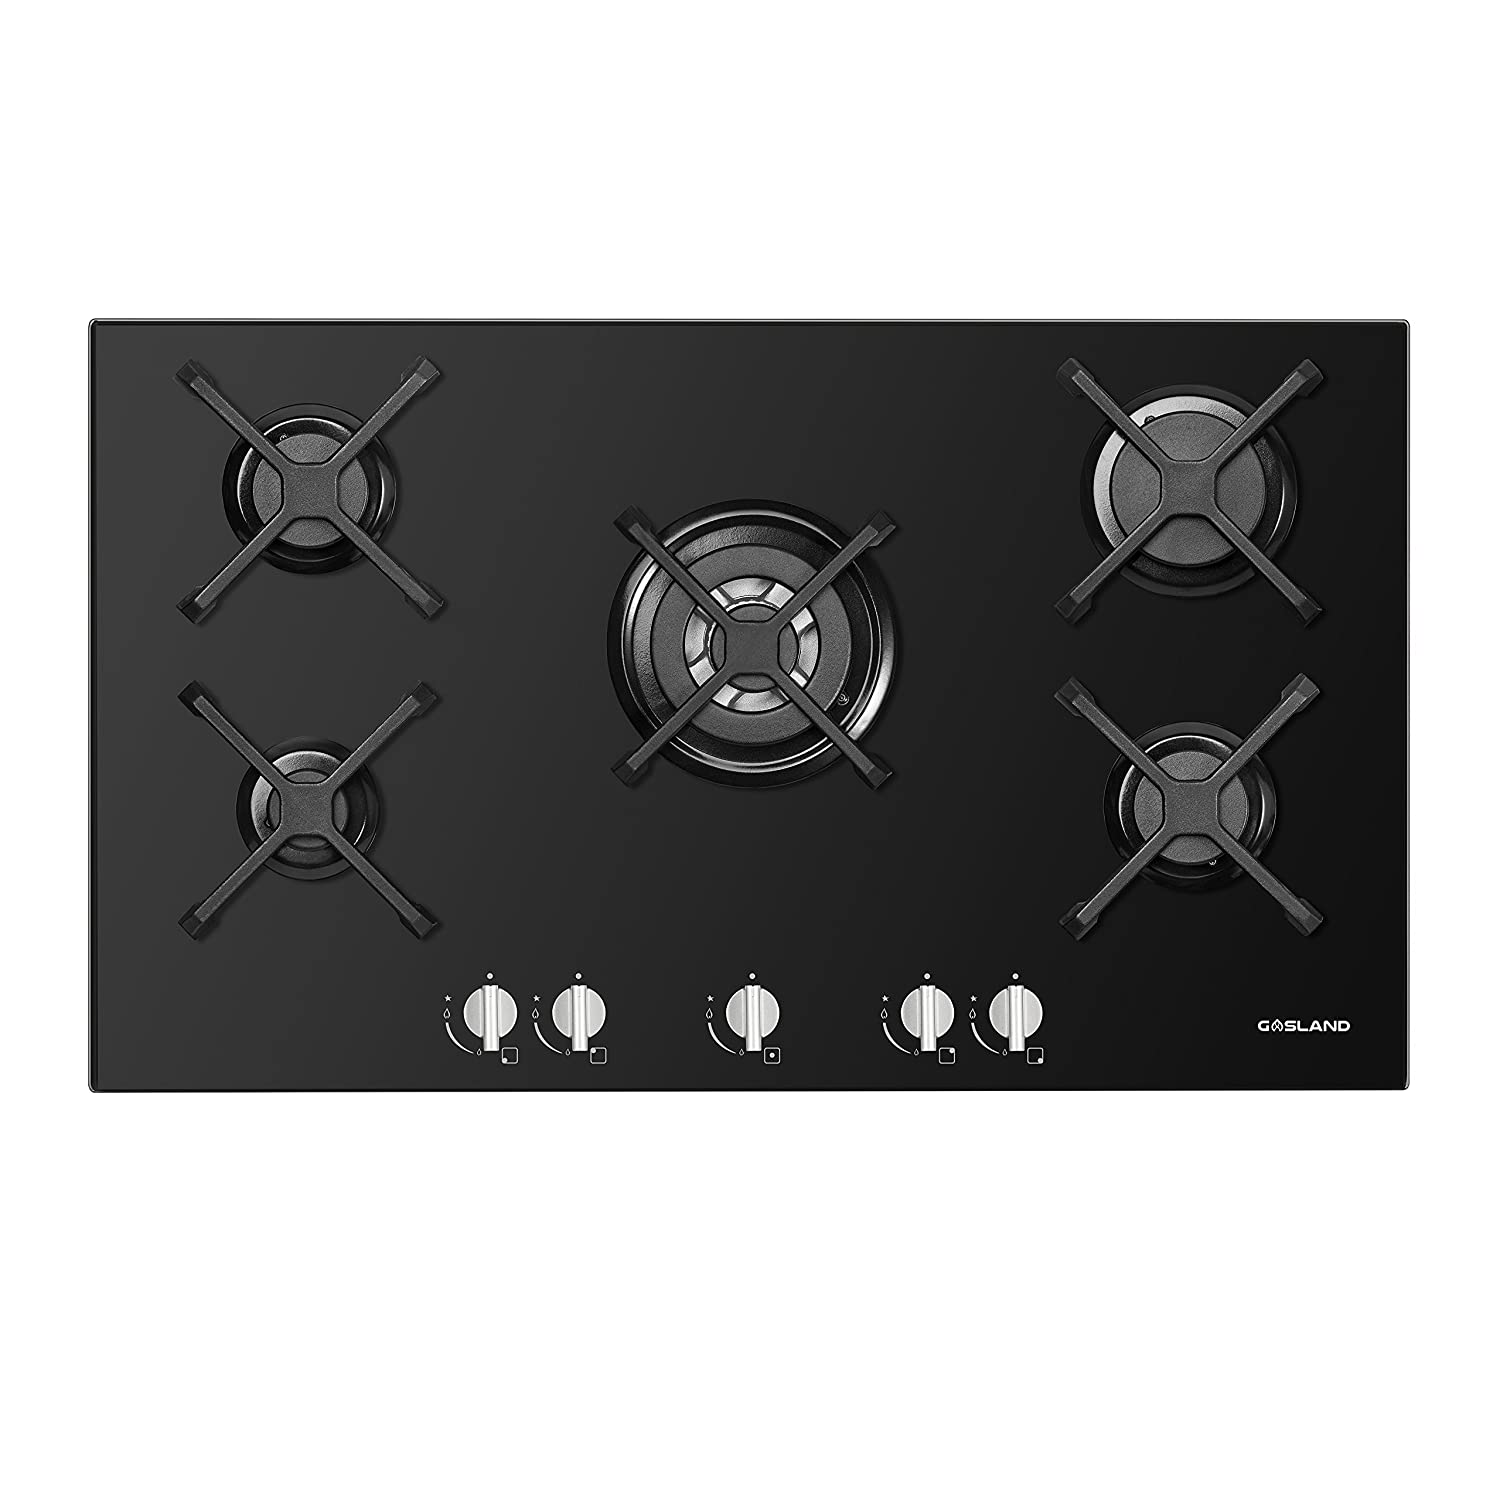 GASLAND chef GH90BF 90cm Built-in 5 Burner Gas on Glass Hob/Cooker/Cooktop with FFD in BLACK TINON